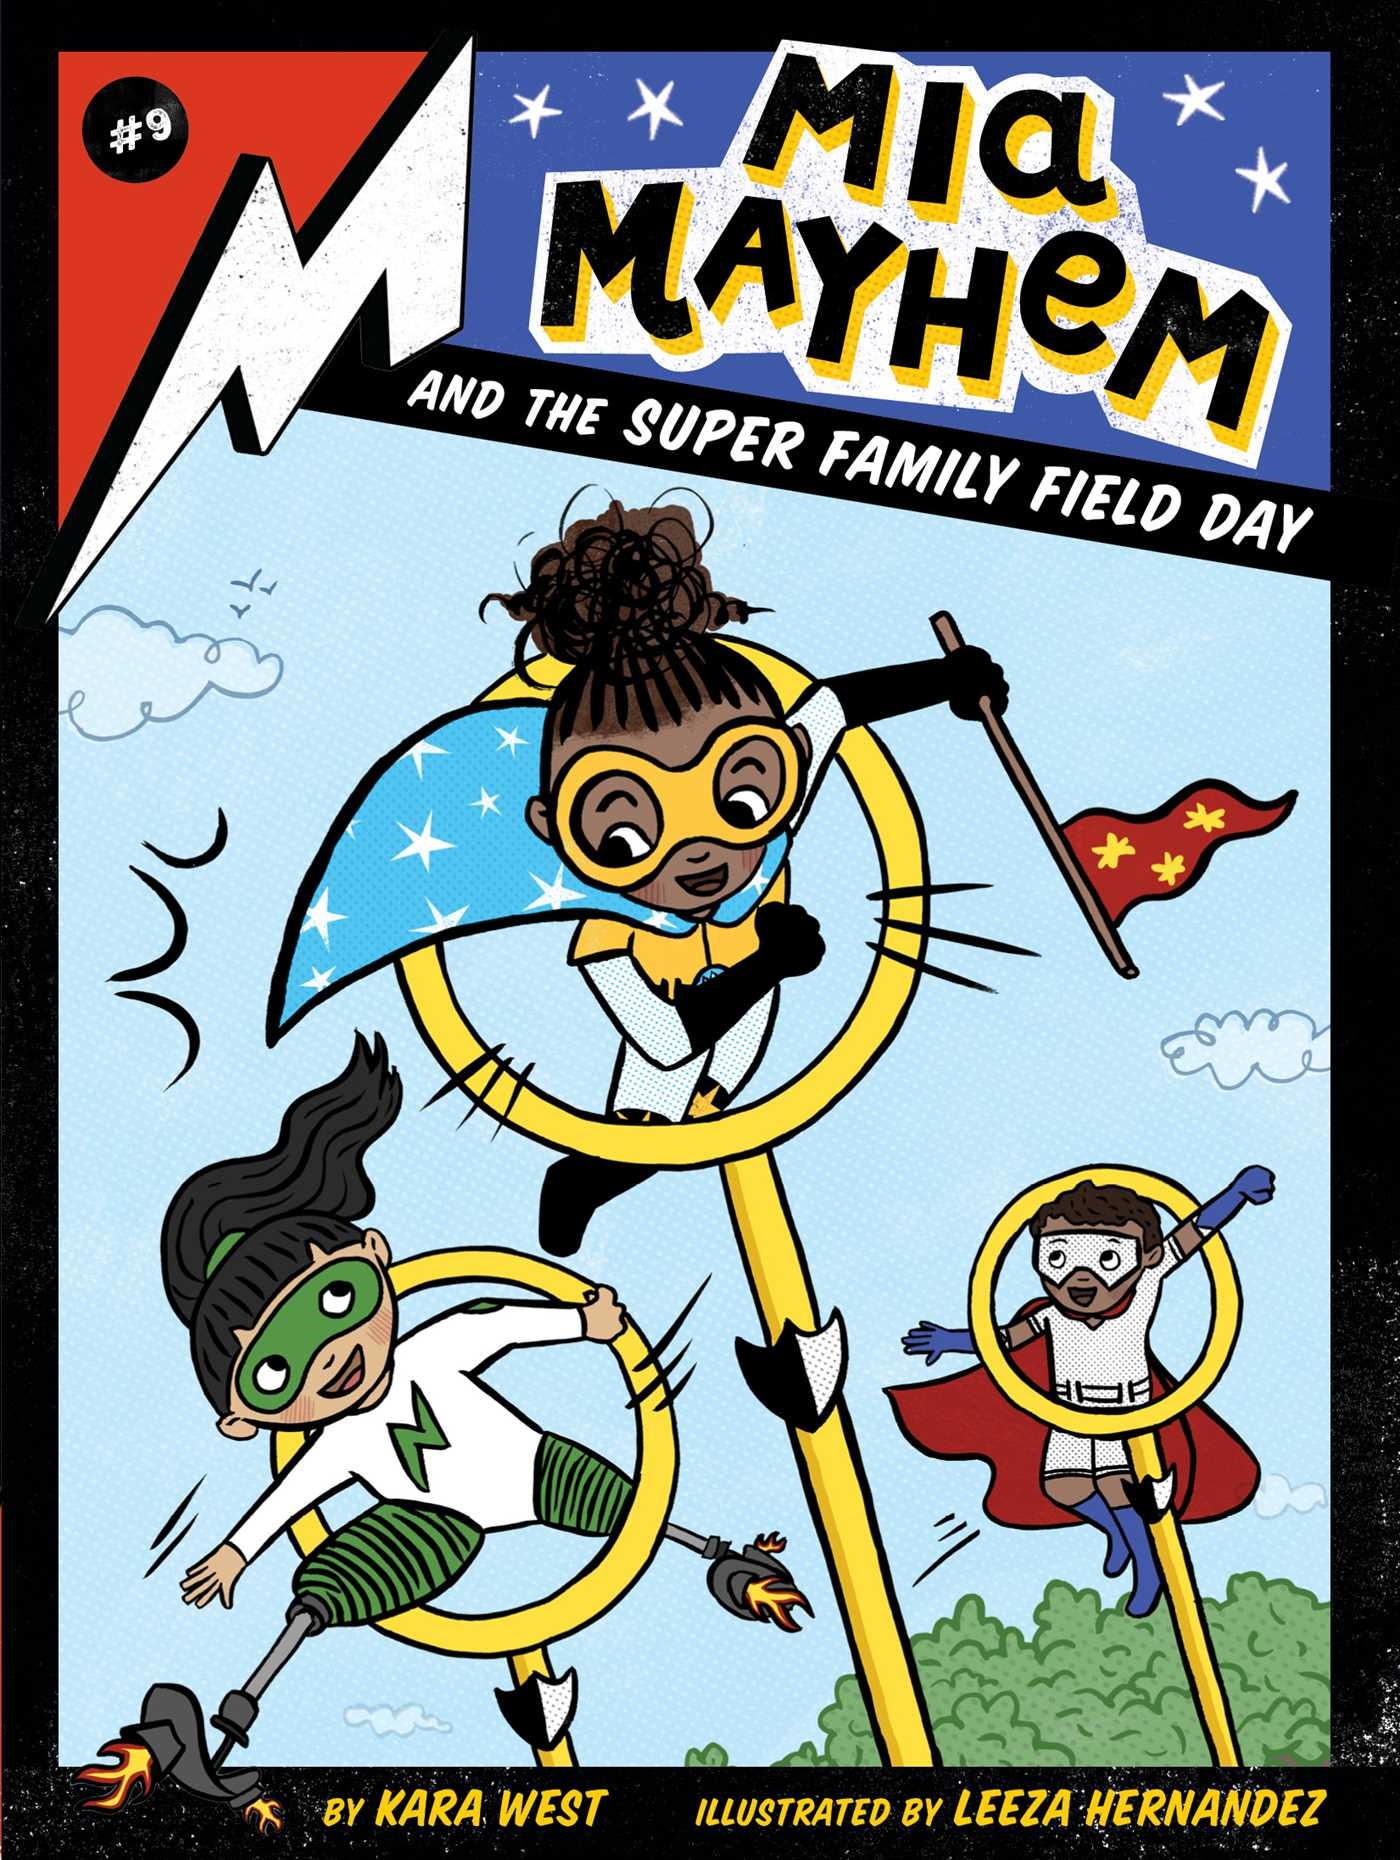 Mia Mayhem and the Super Family Field Day